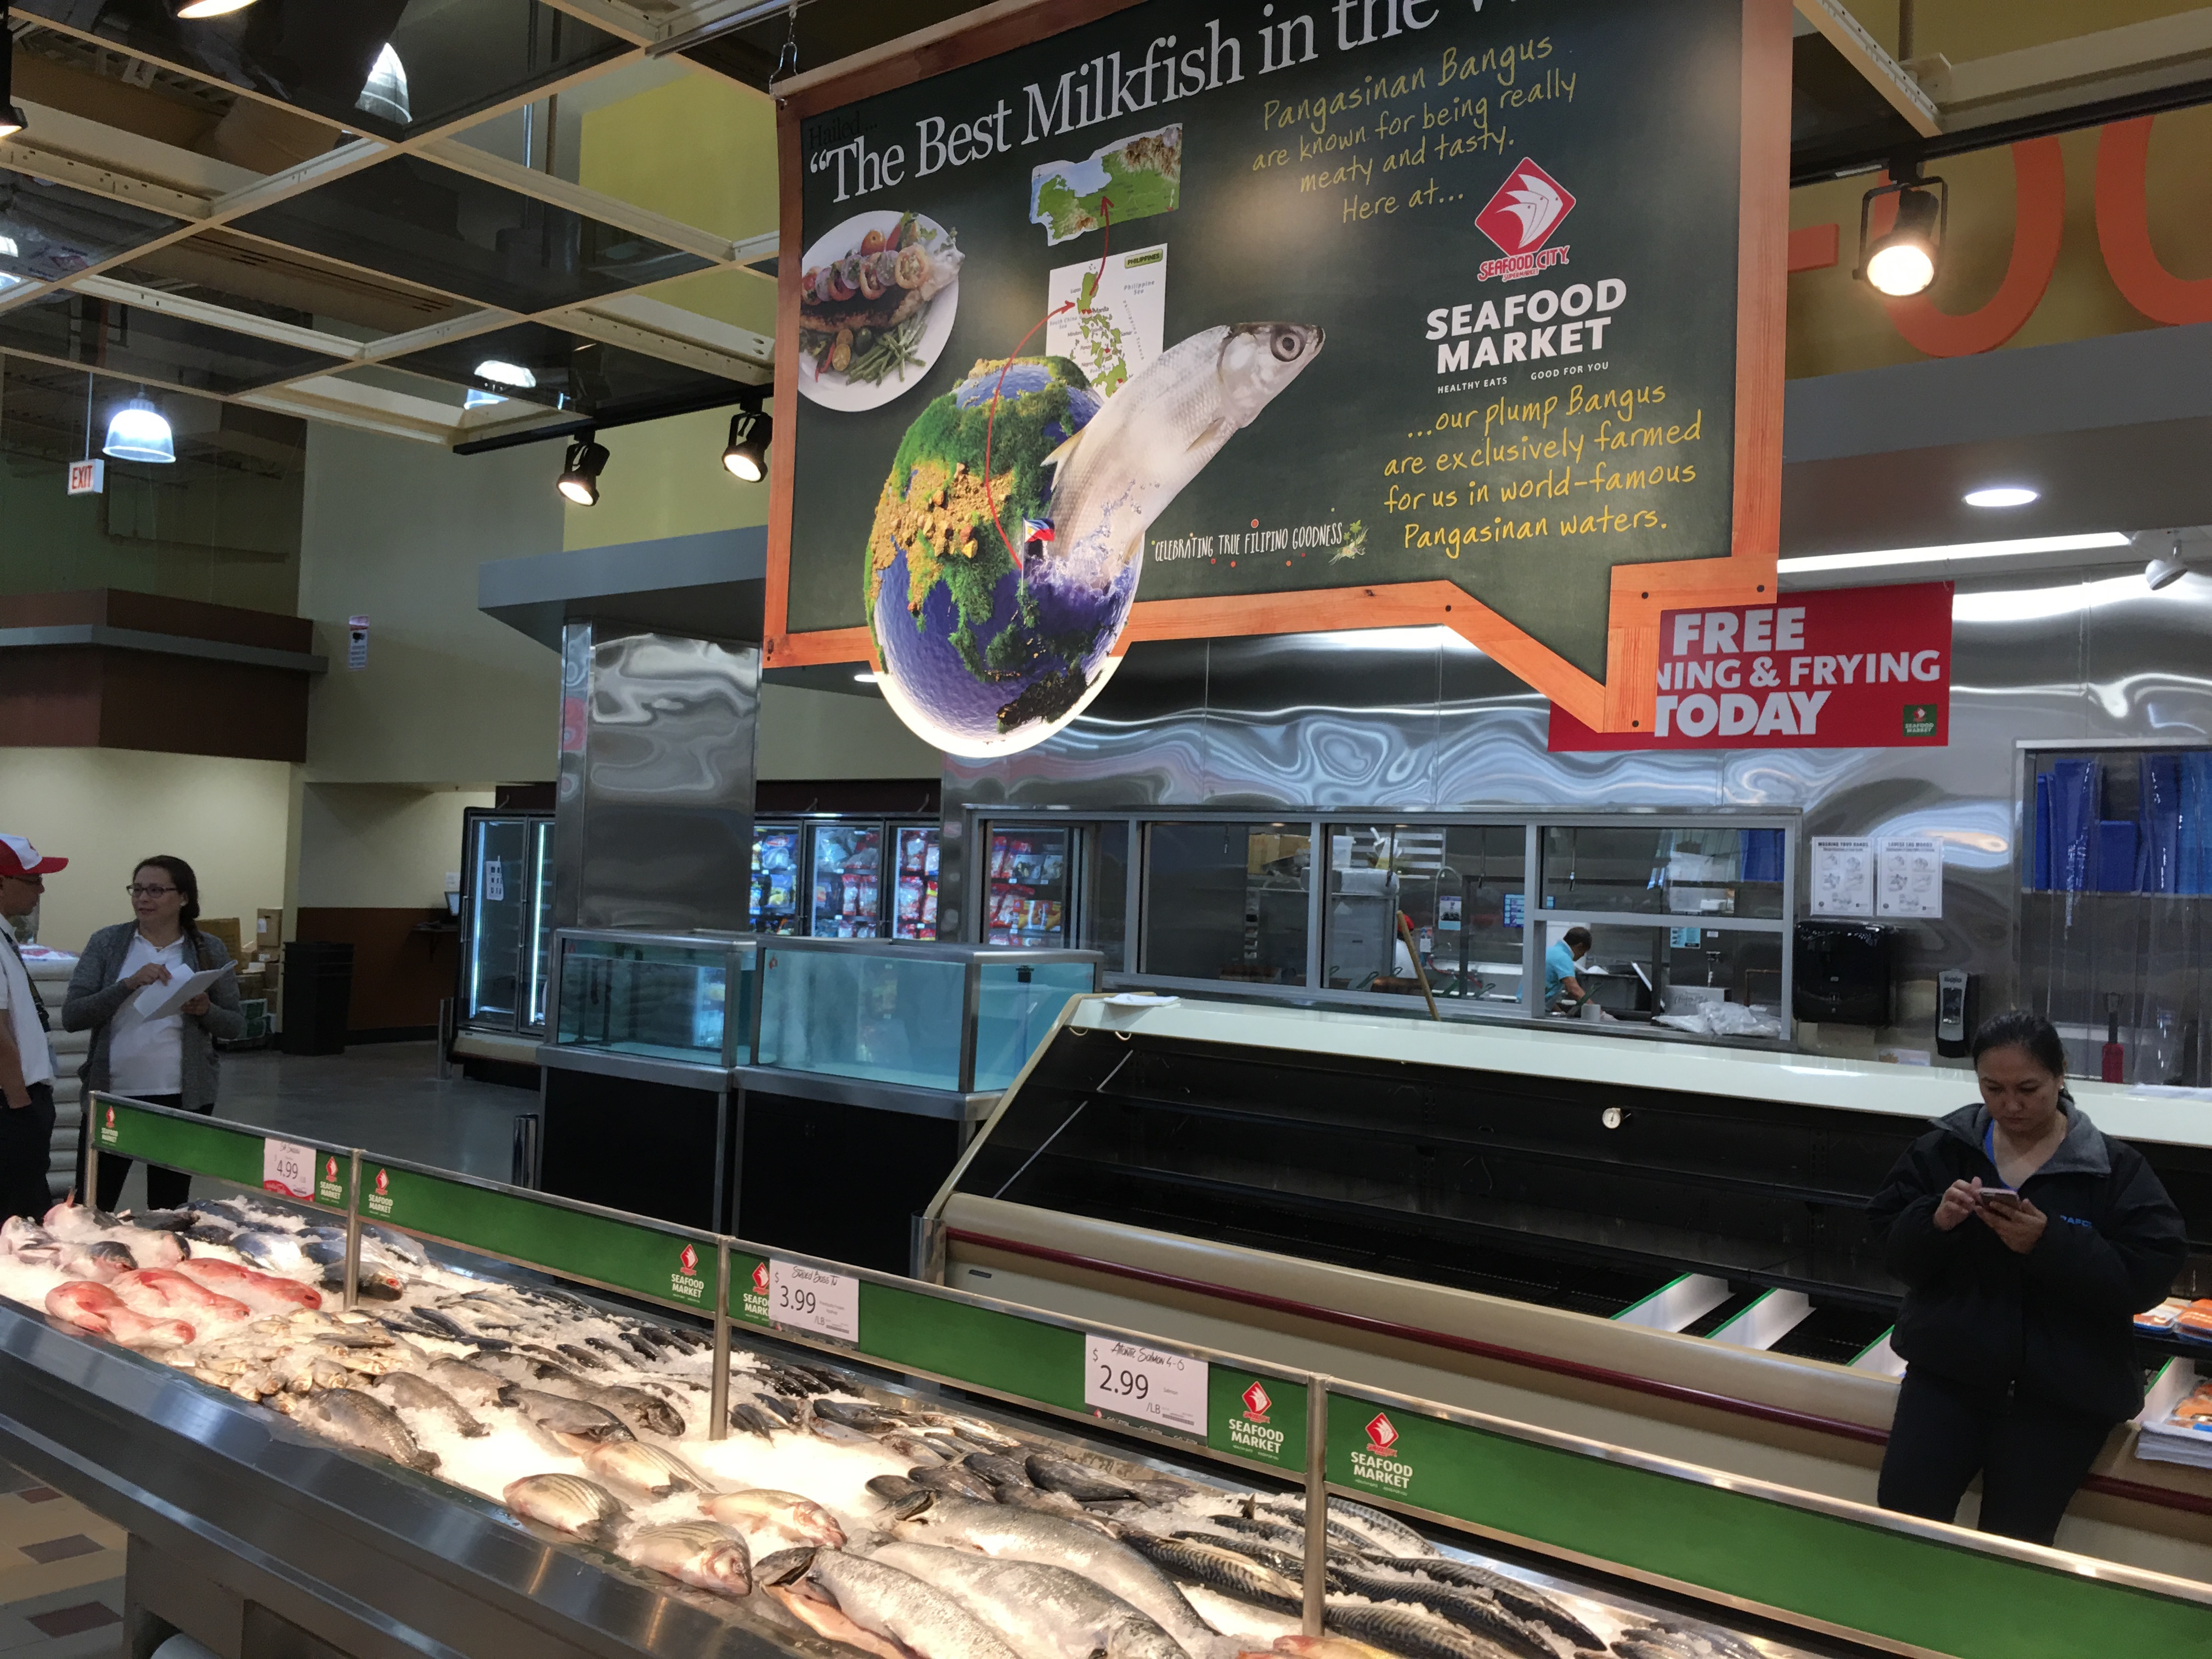 Filipino mega market seafood city opening on wednesday in for City fish market menu